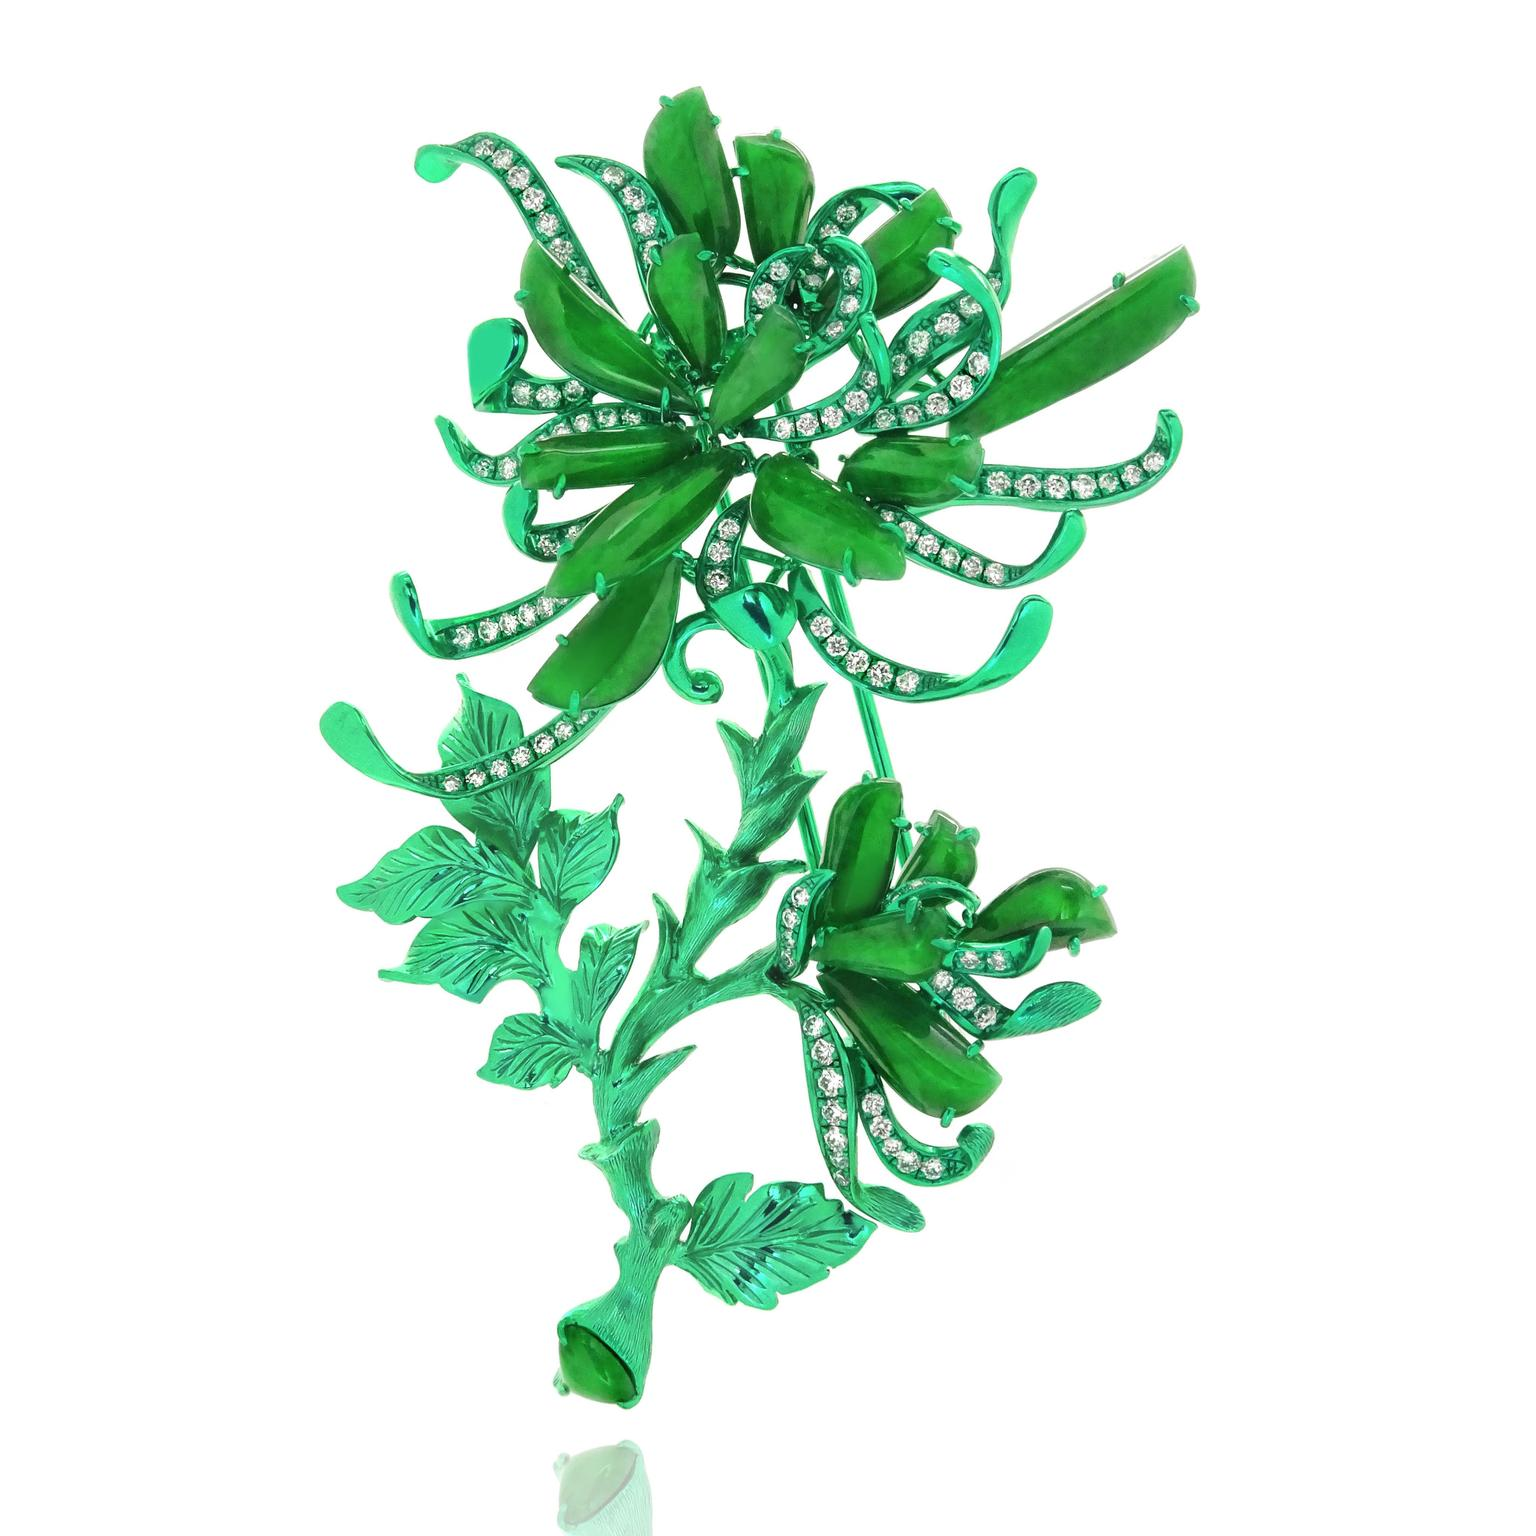 The Green Chrysanthemum brooch from Austy Lee